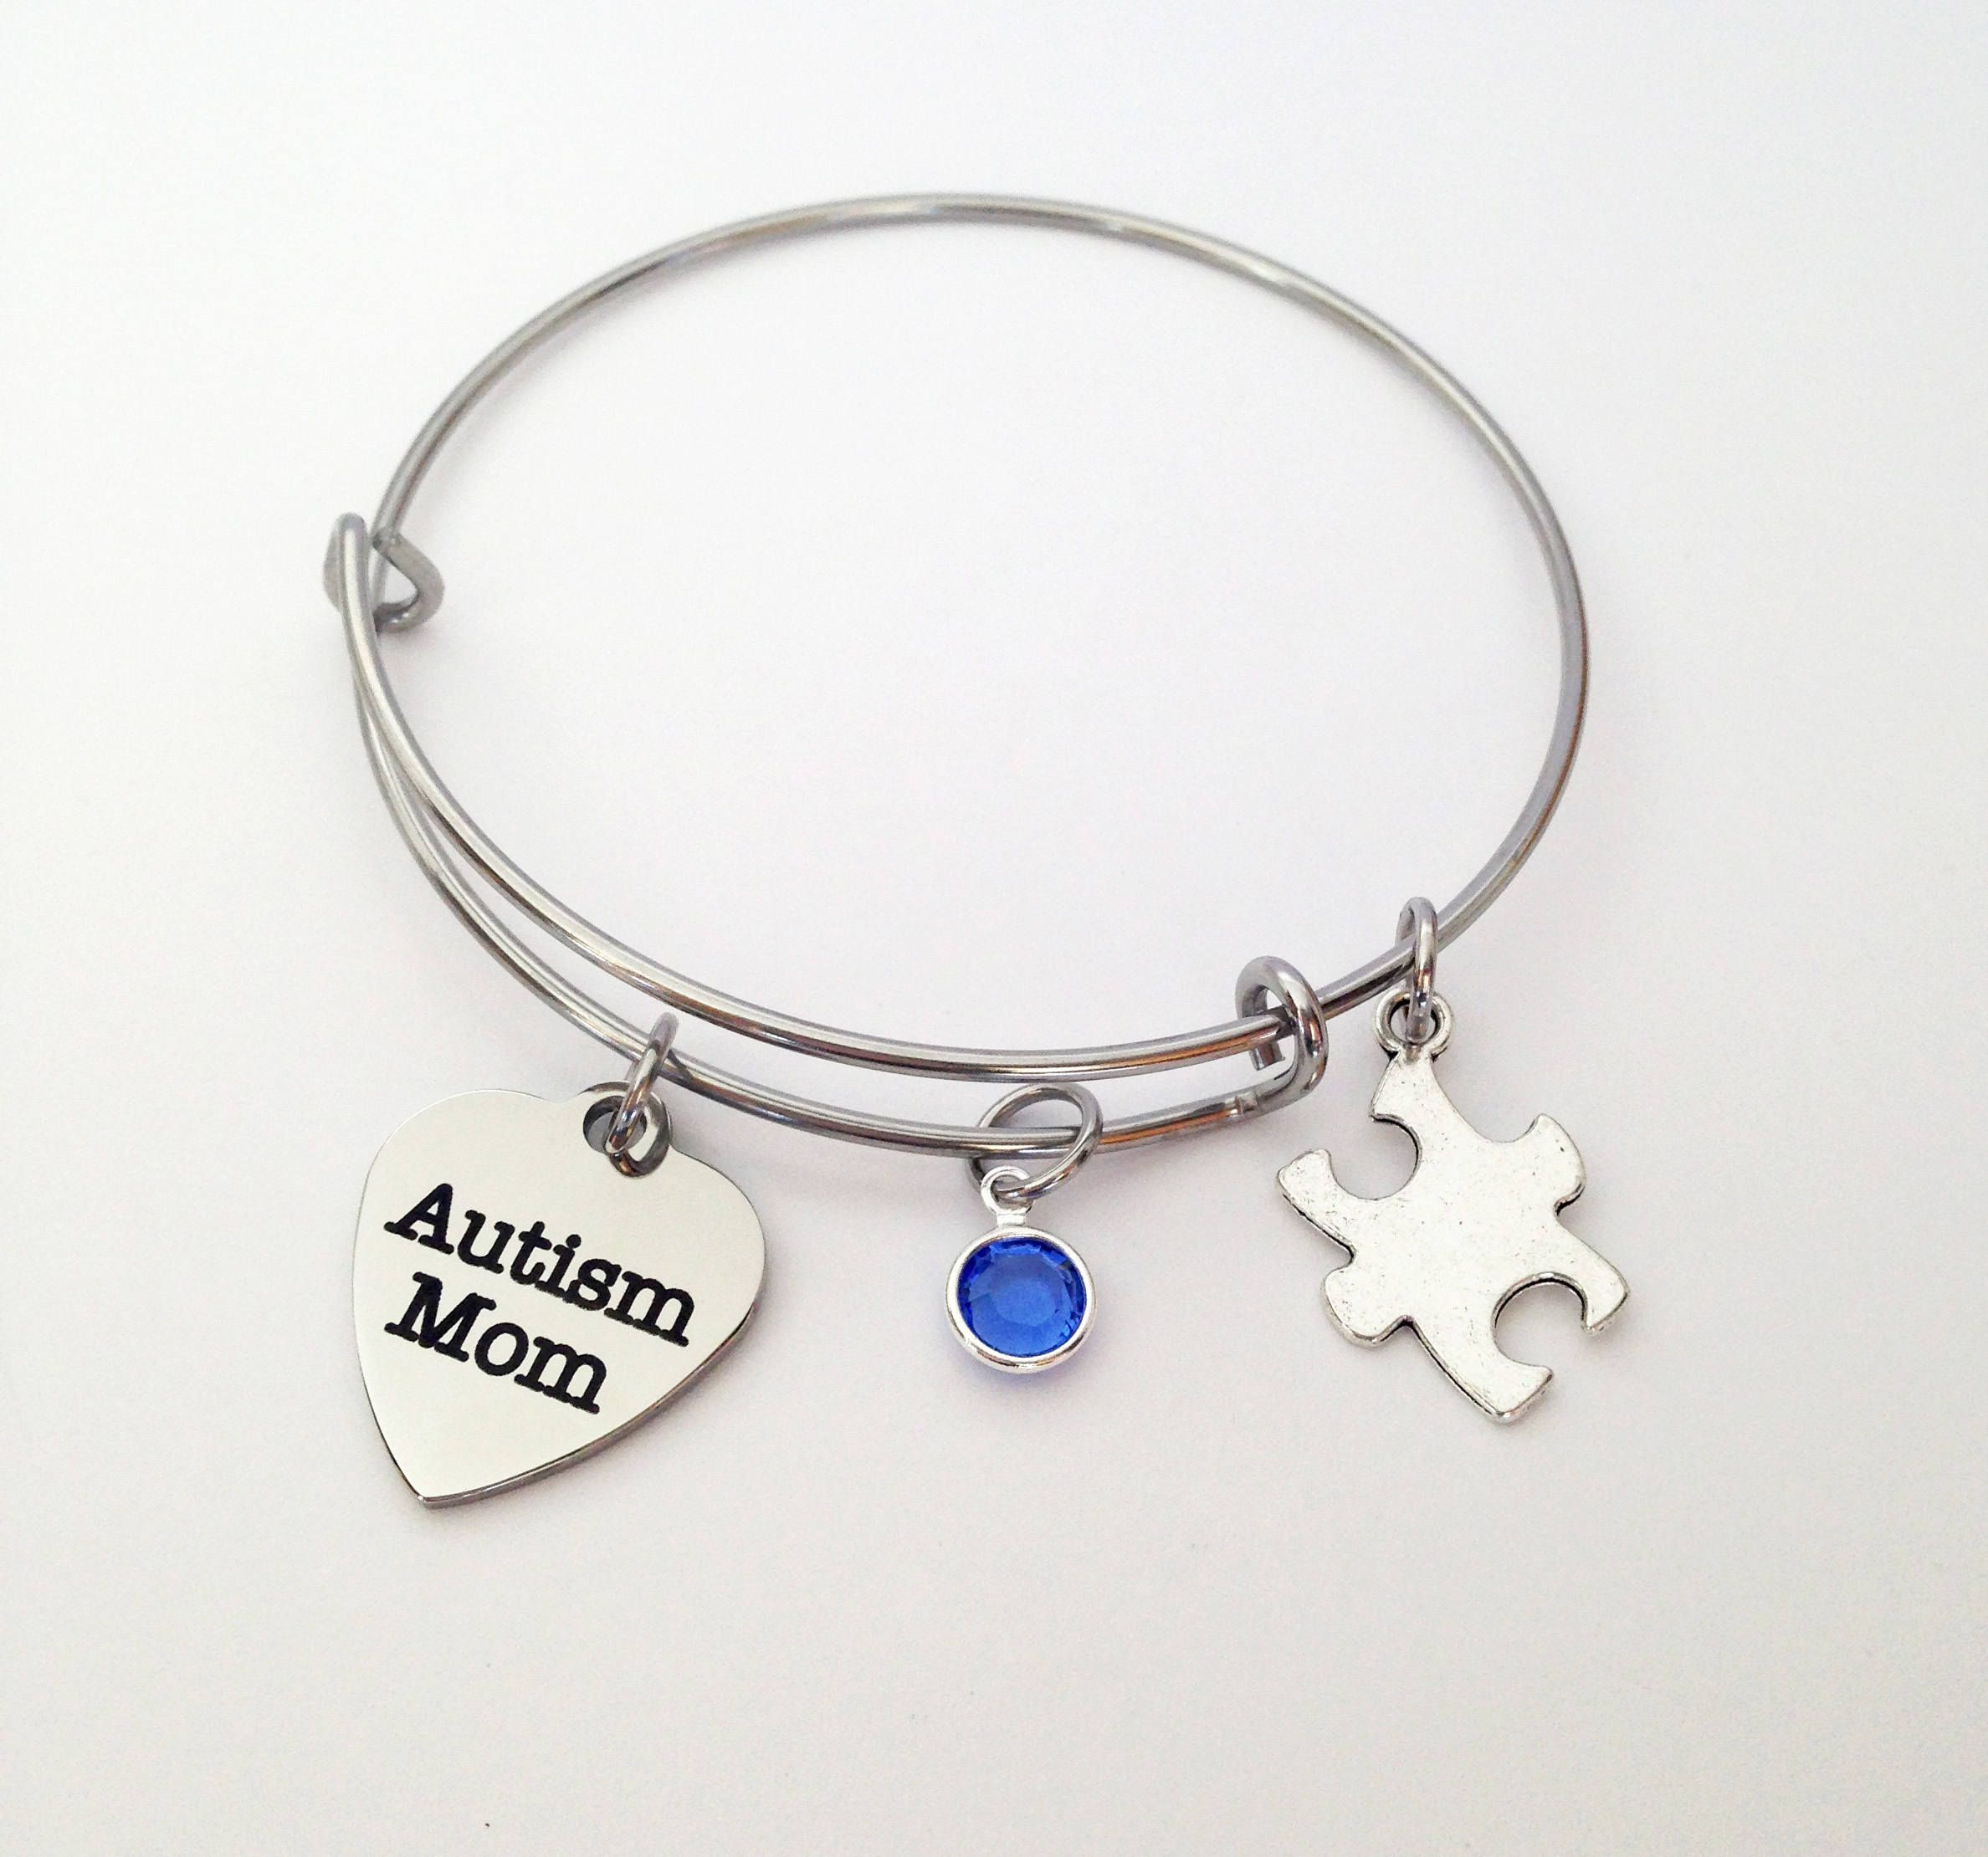 mother daughter solid sterling feet baby polished awareness hand hearts bangle unique gift products bracelet personalised handstamped uk smooth present wide jewellery handmade love stamped autism always sillver mum silver son special her